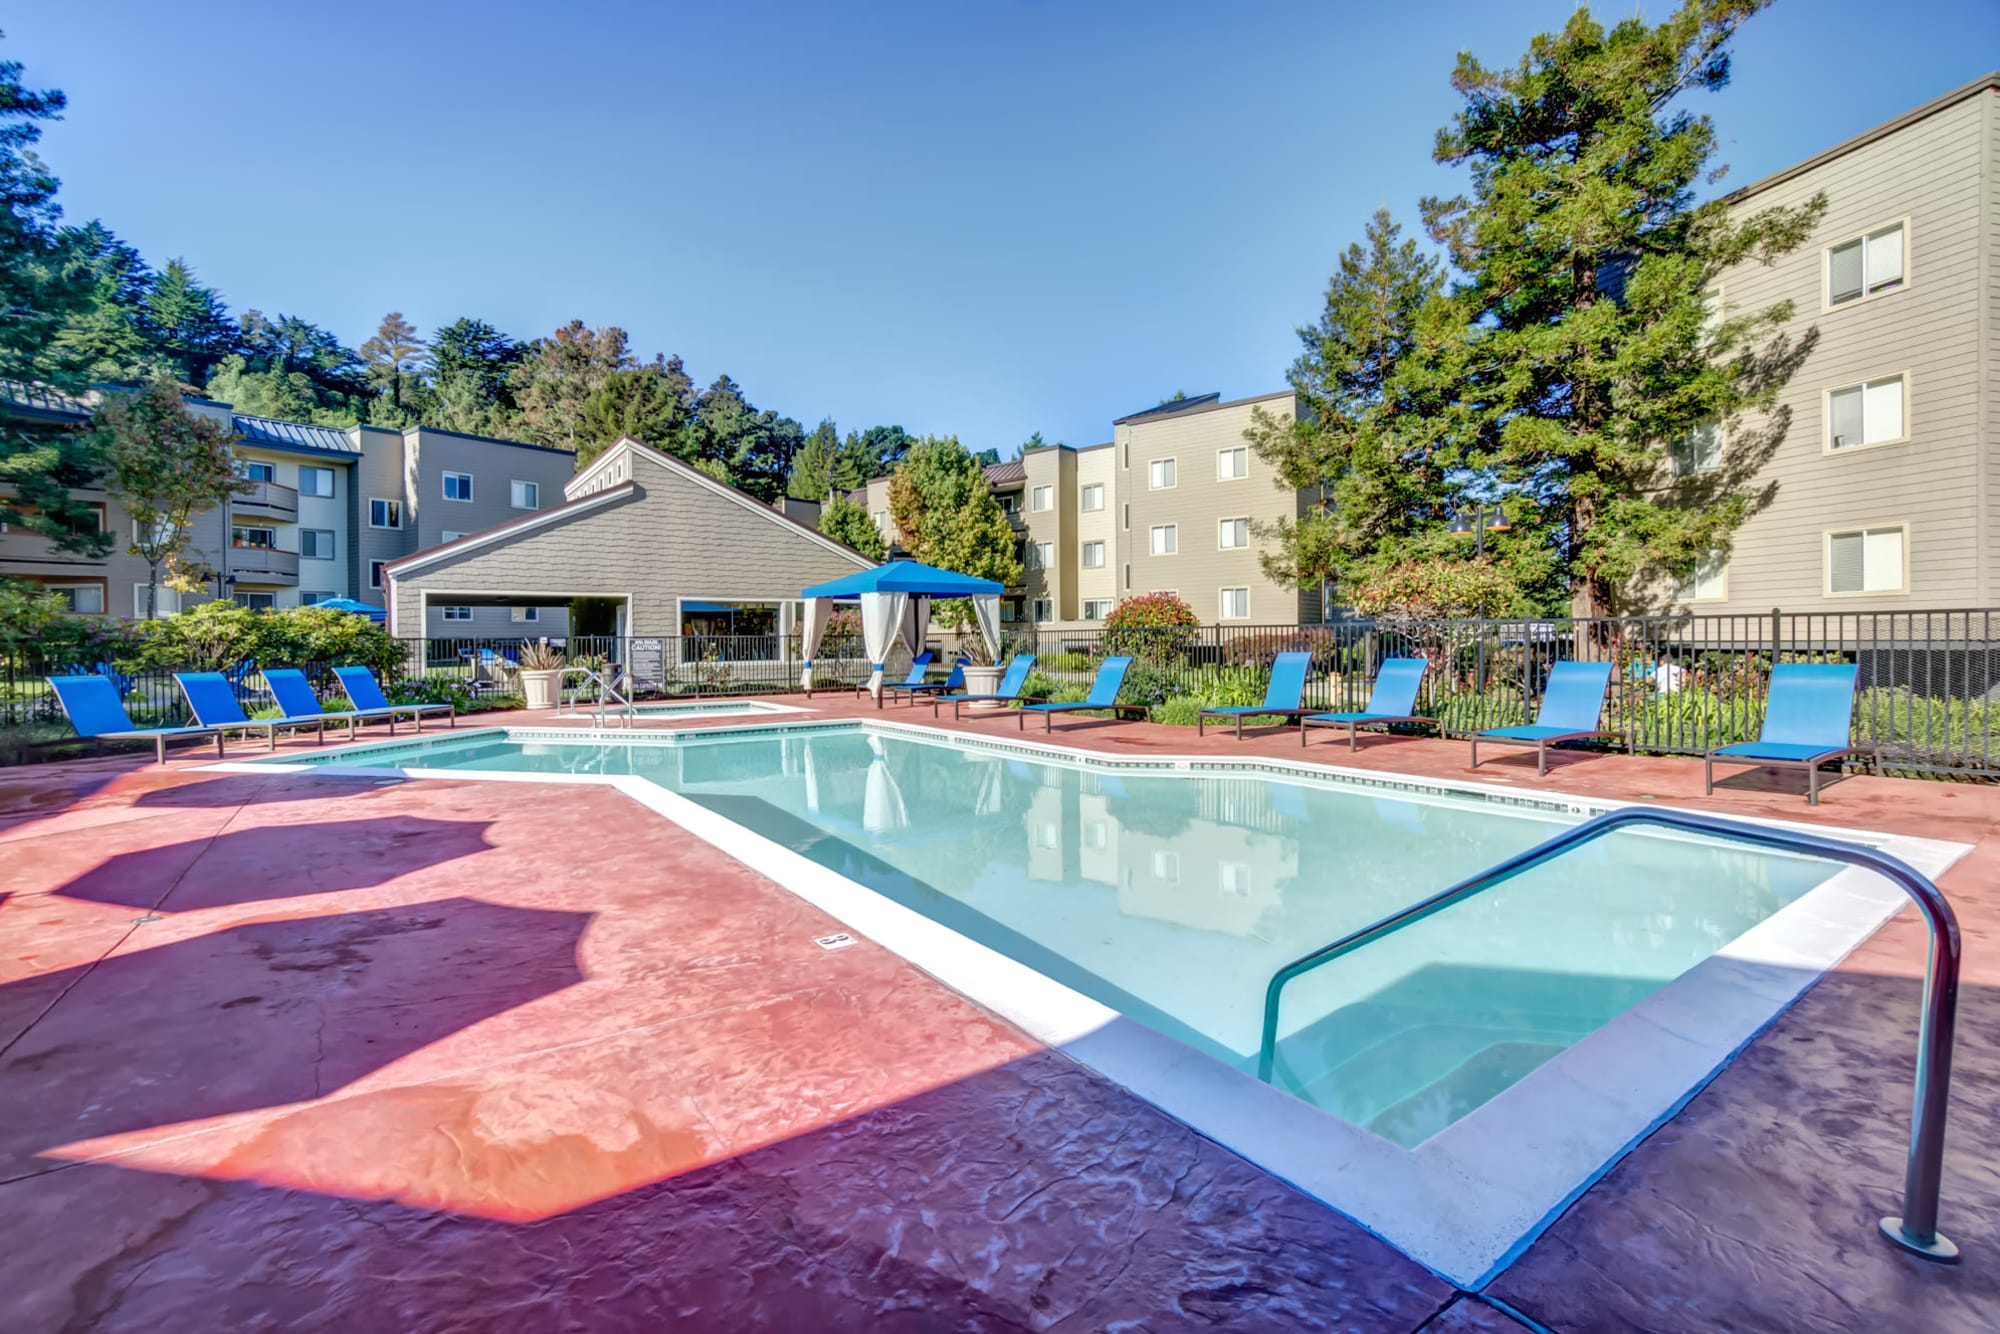 Pool with lounge chairs and view of fitness center at Serramonte Ridge Apartment Homes